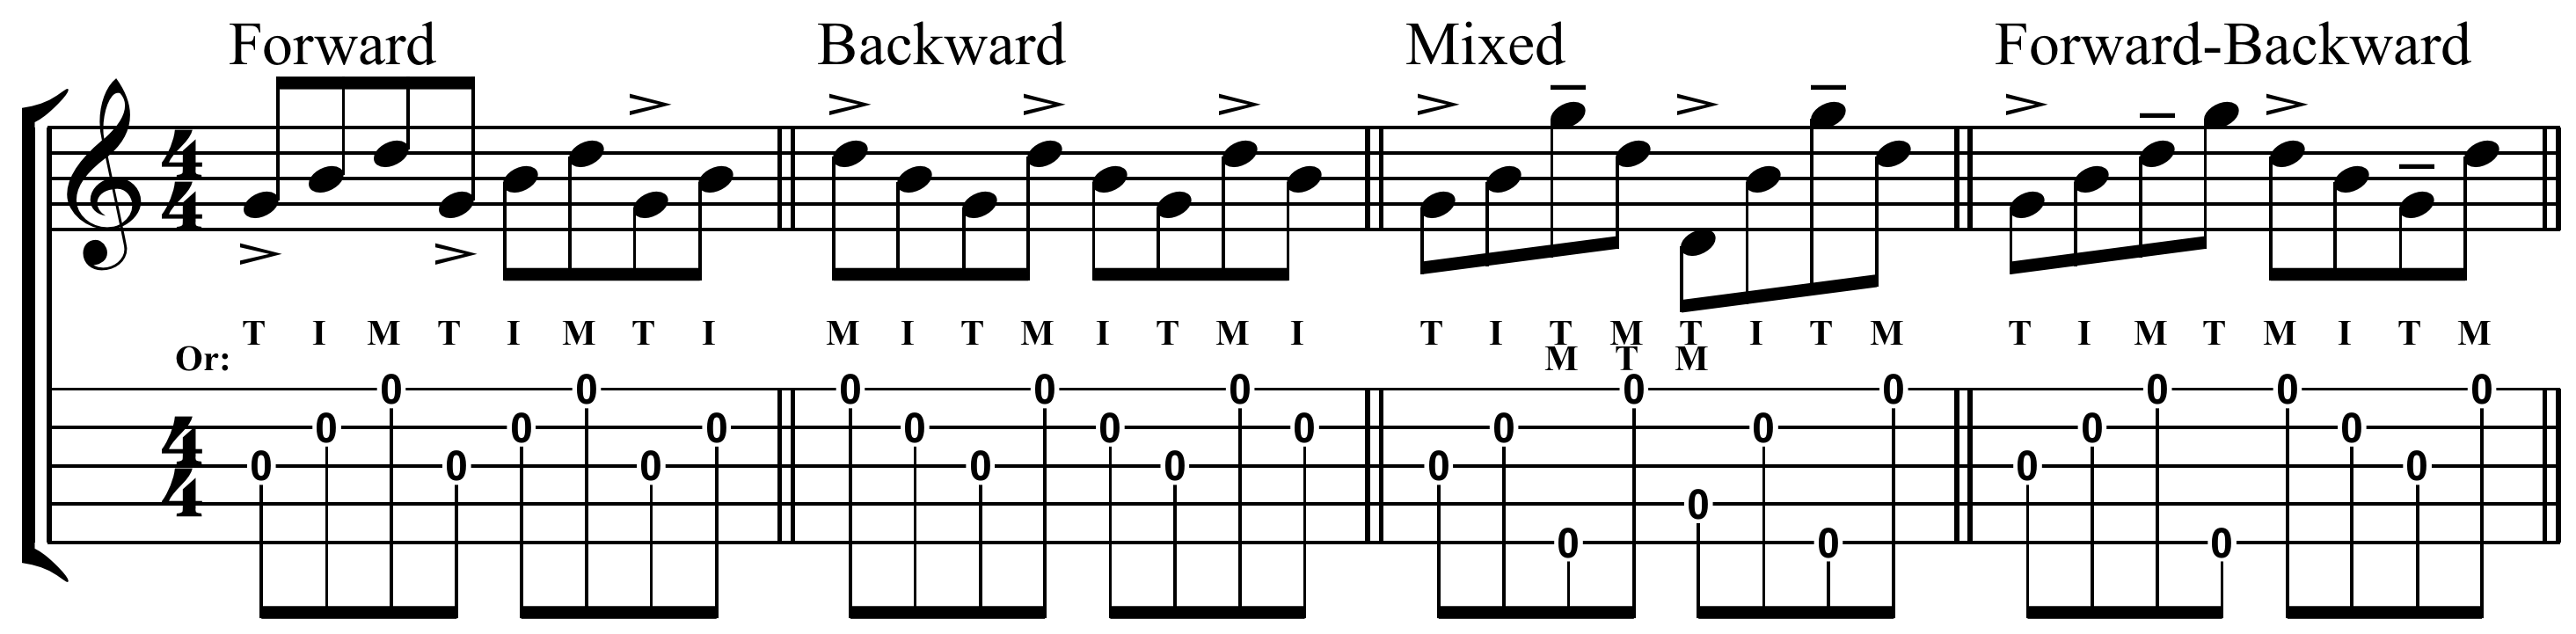 Chords for beginner guitar